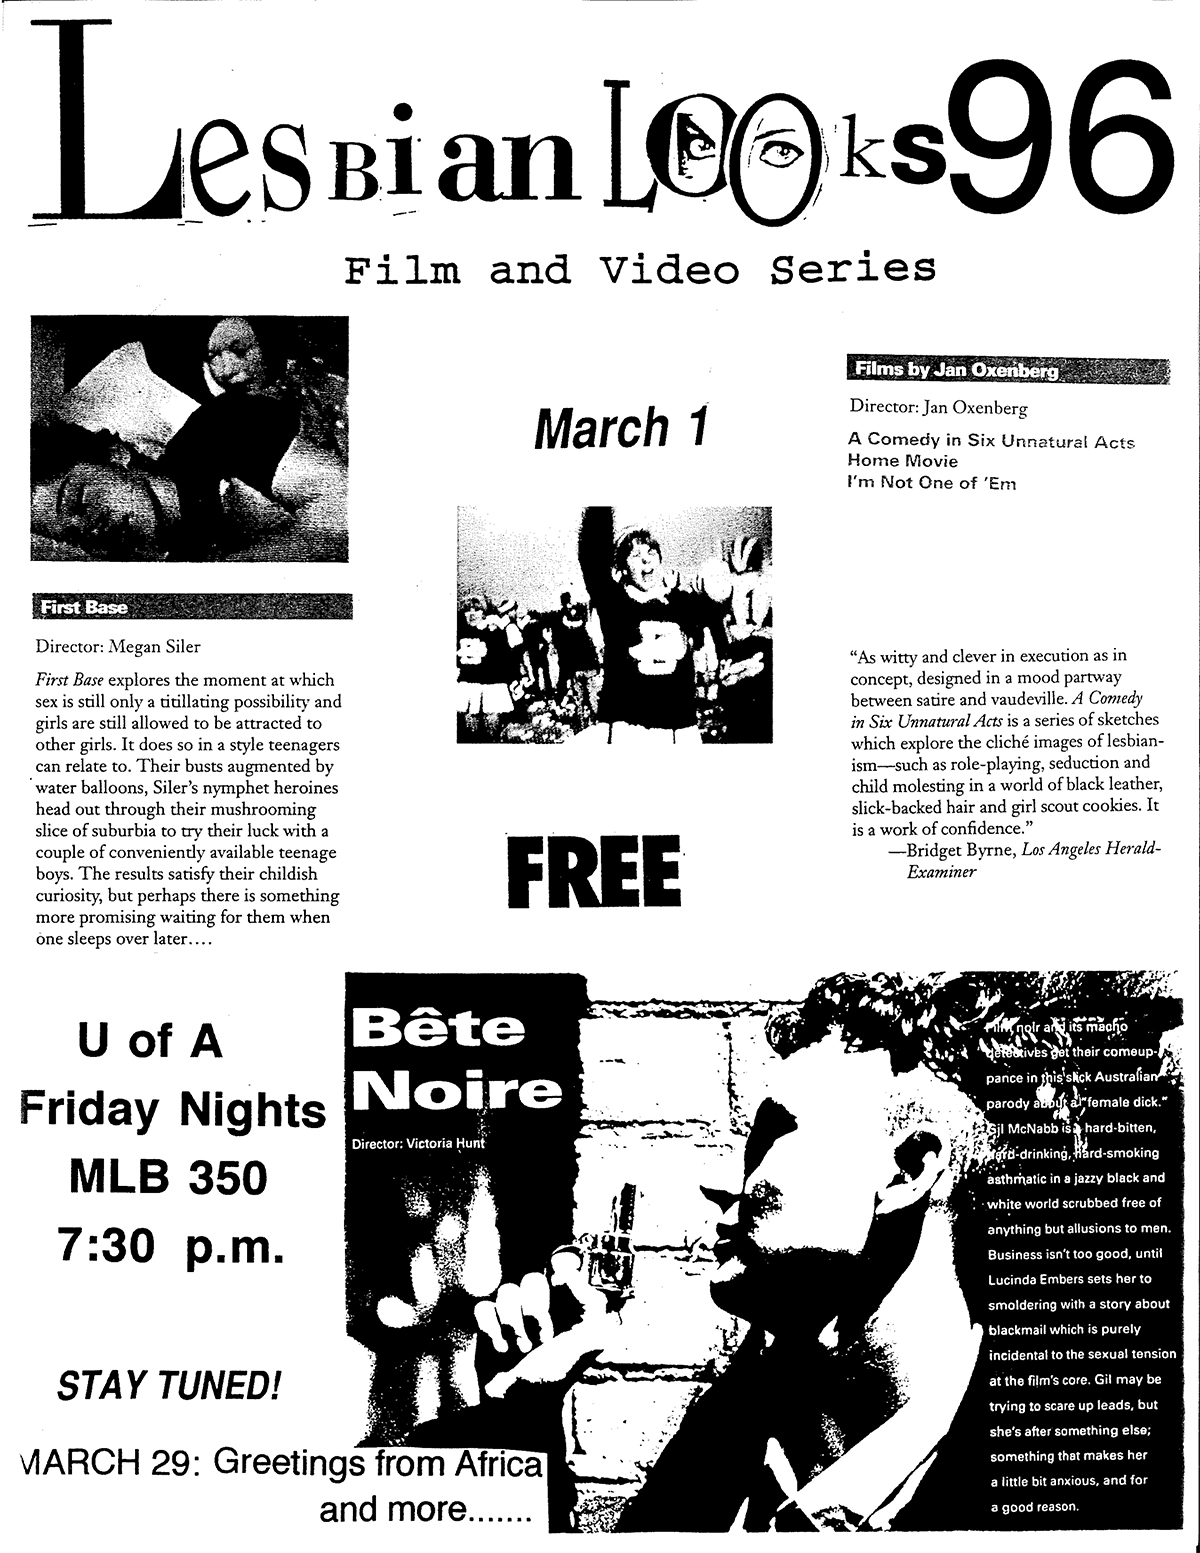 Lesbian Looks 1996 flyer March 1